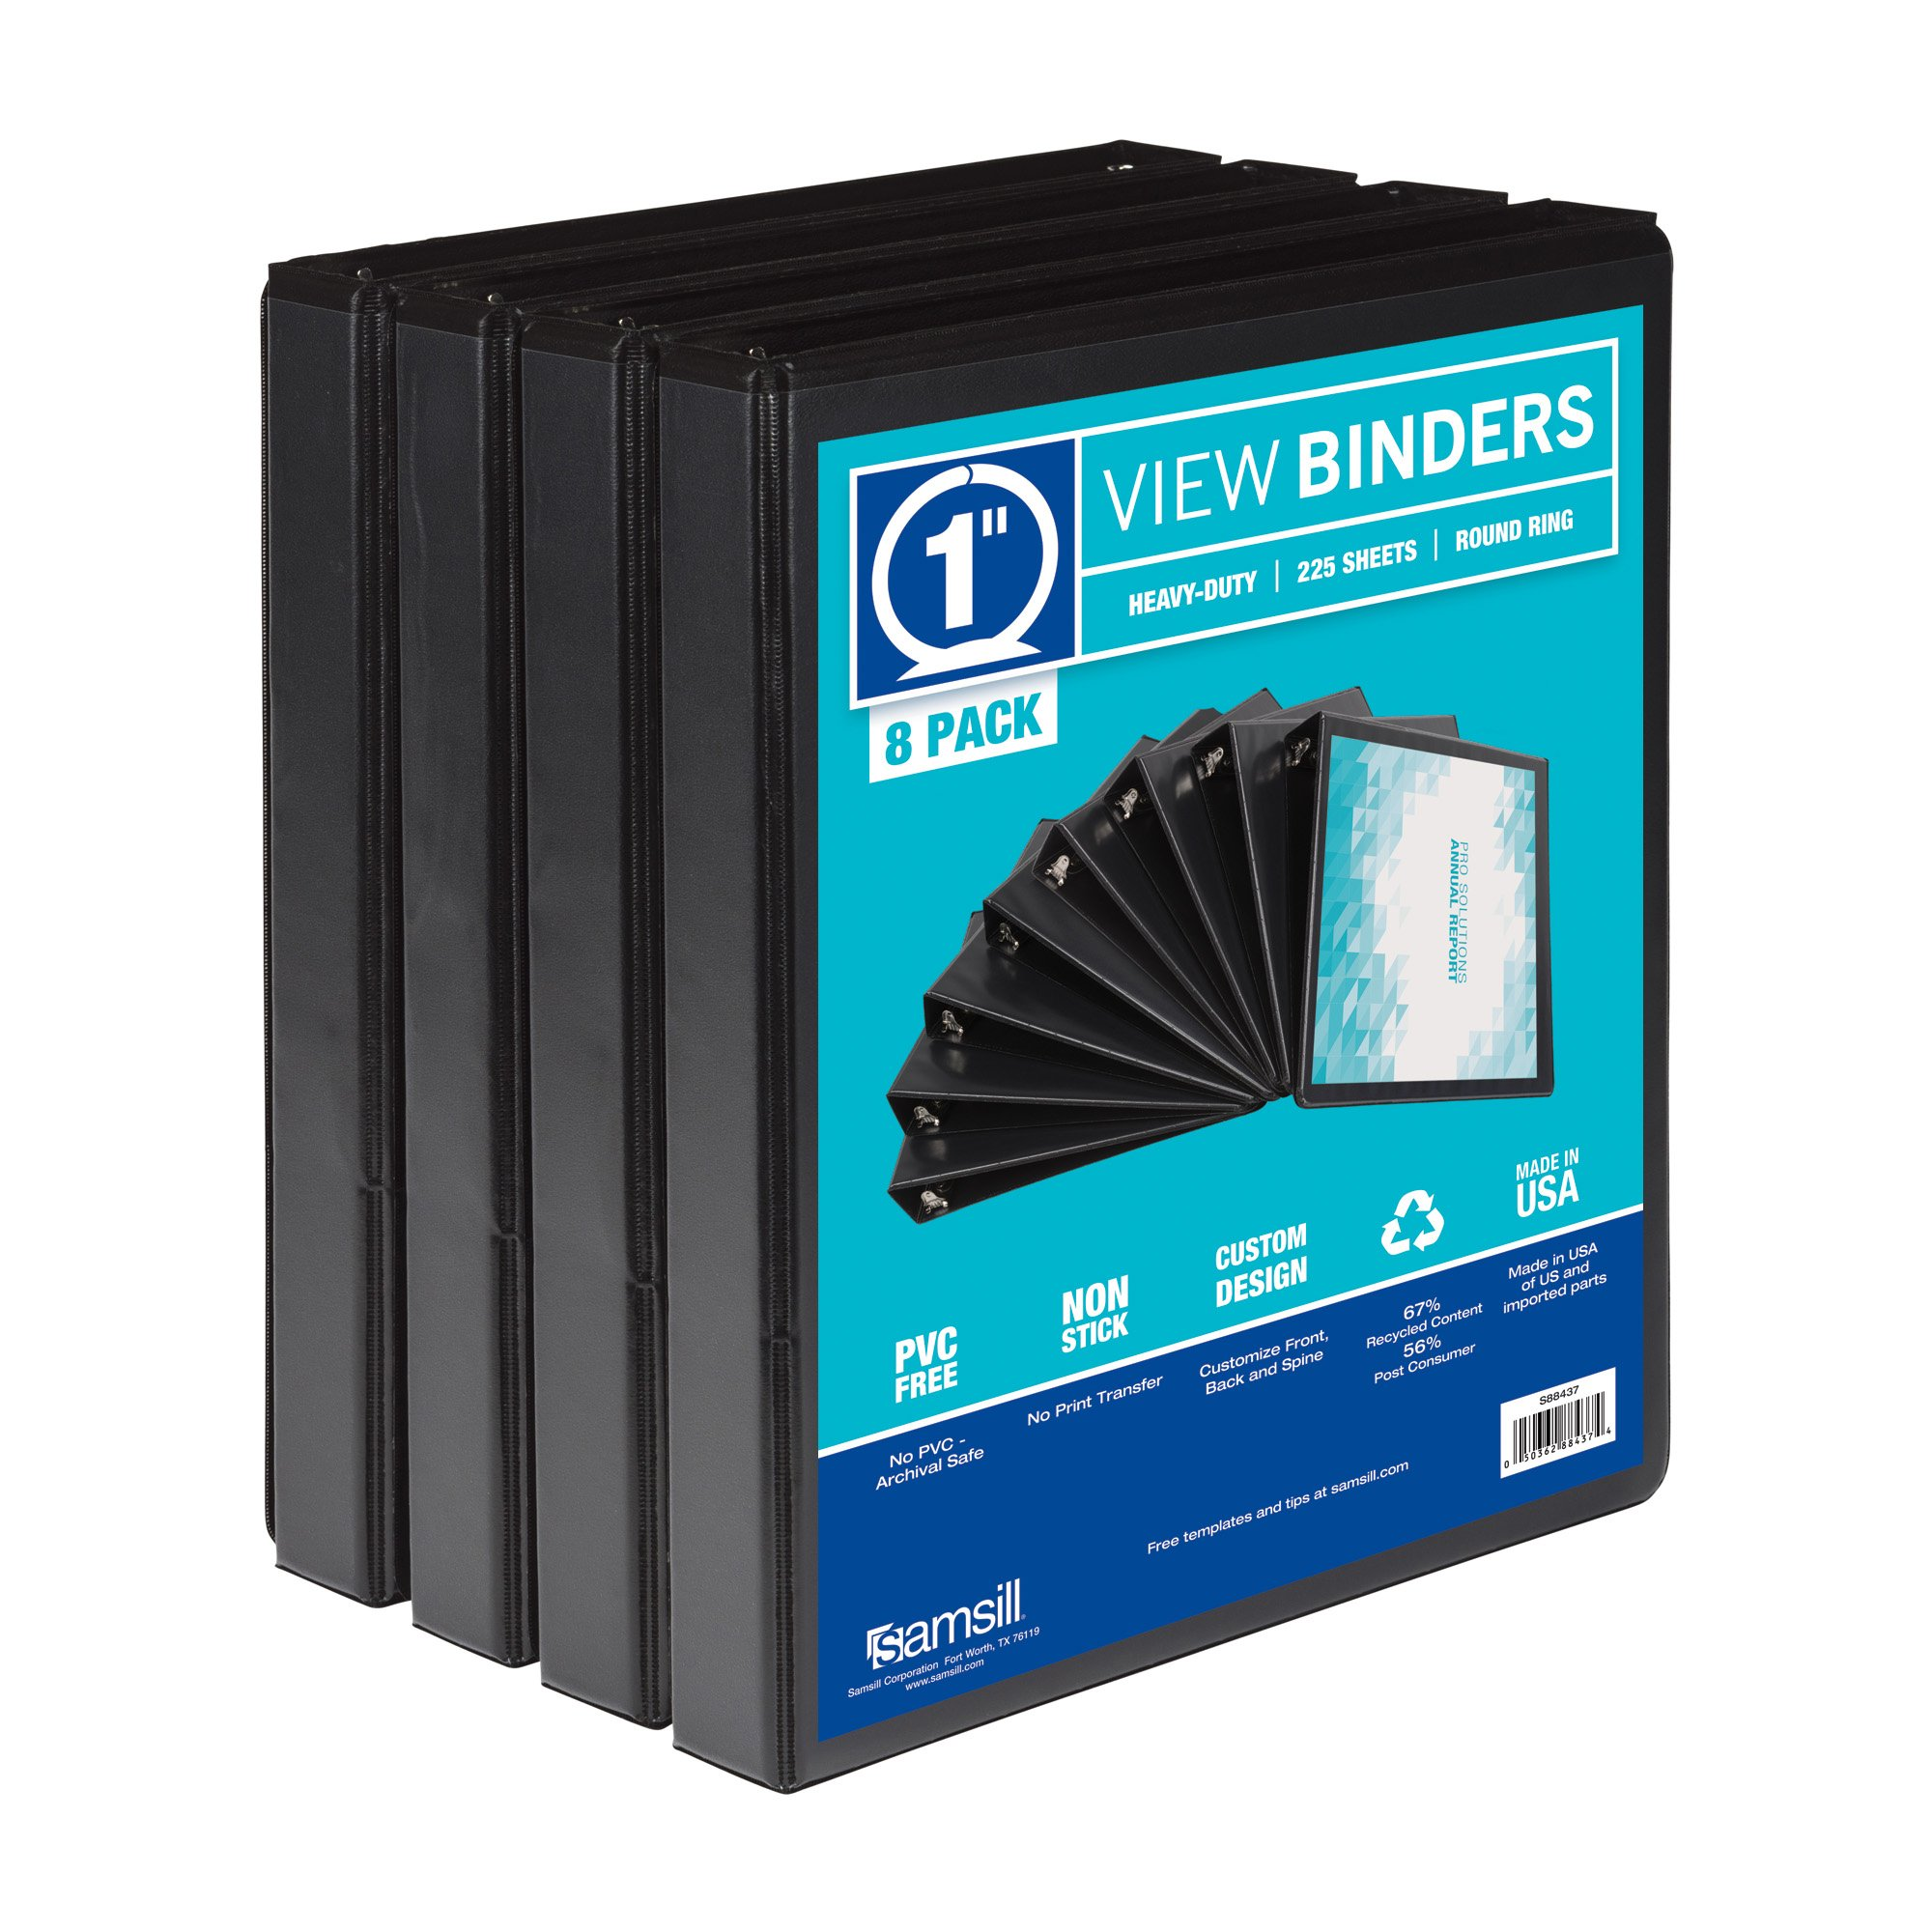 Samsill S88430 3 Ring Durable View Binders - 8 Pack, 1 Inch Round Ring , Non-Stick Customizable Clear Cover, Black